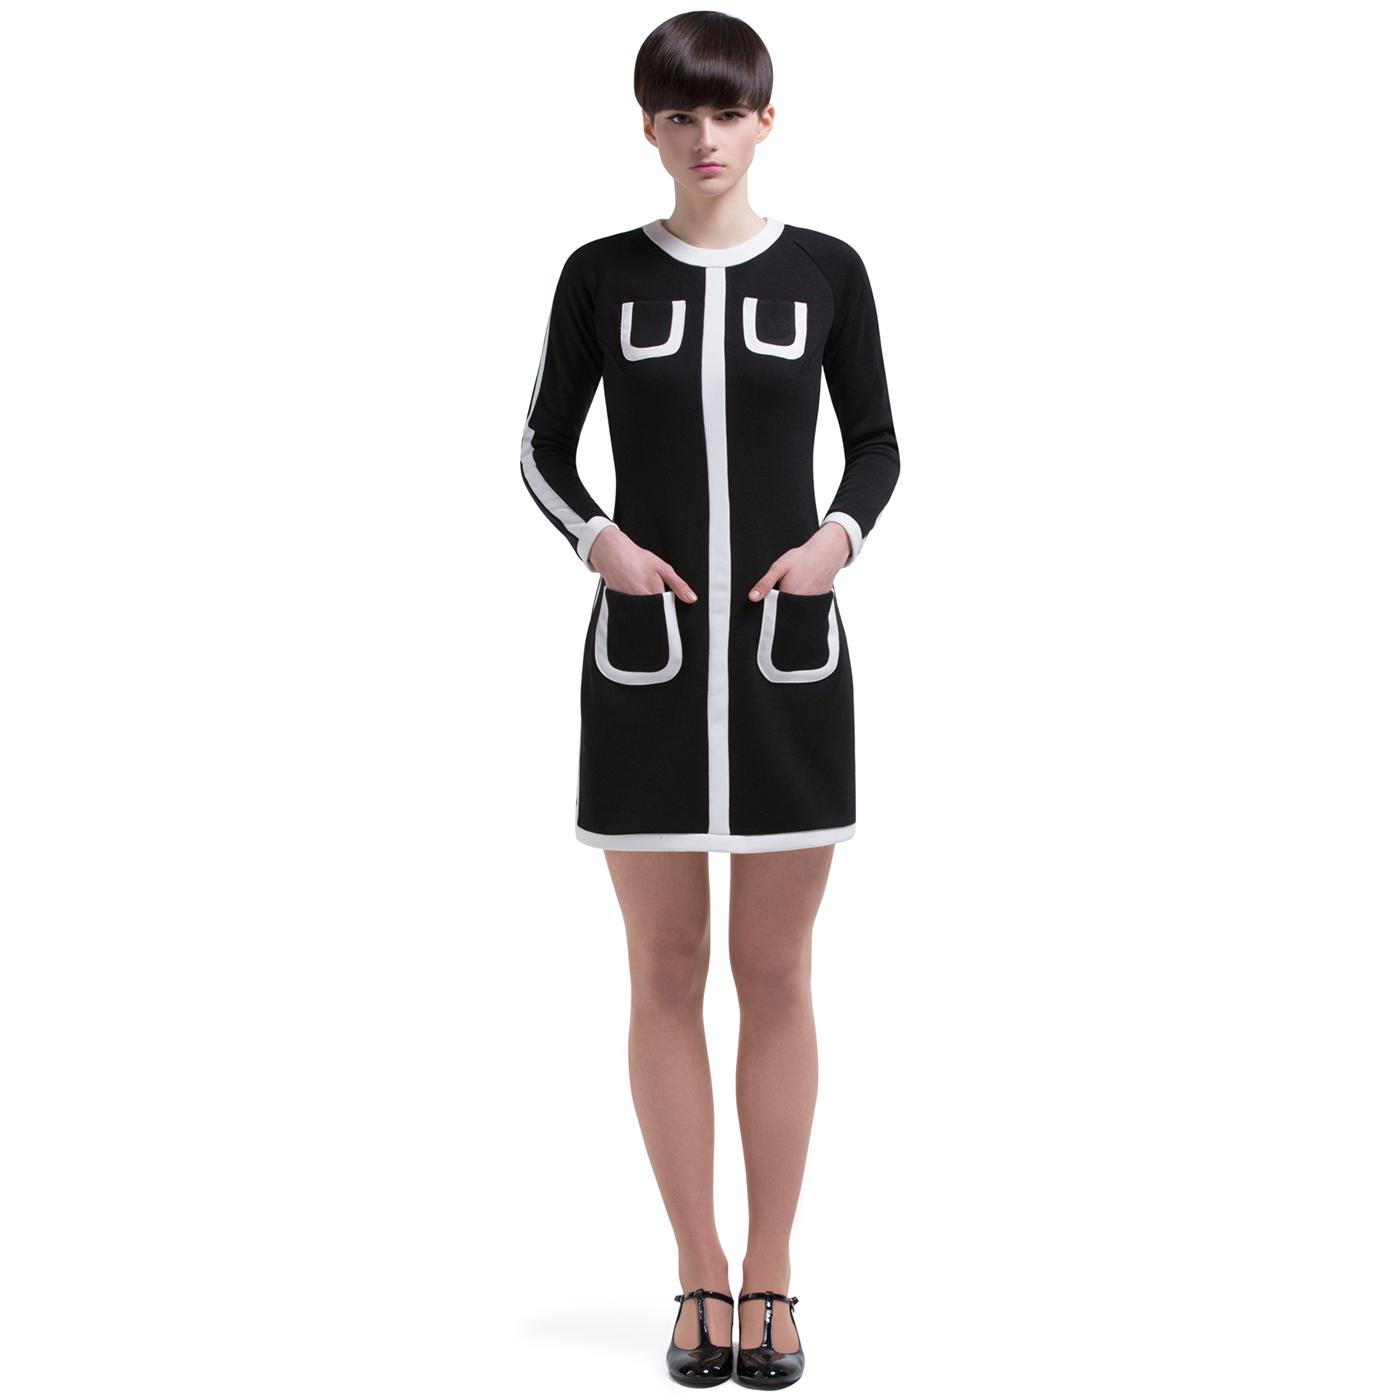 MARMALADE Retro 60s Mod Outlined Dress in Black